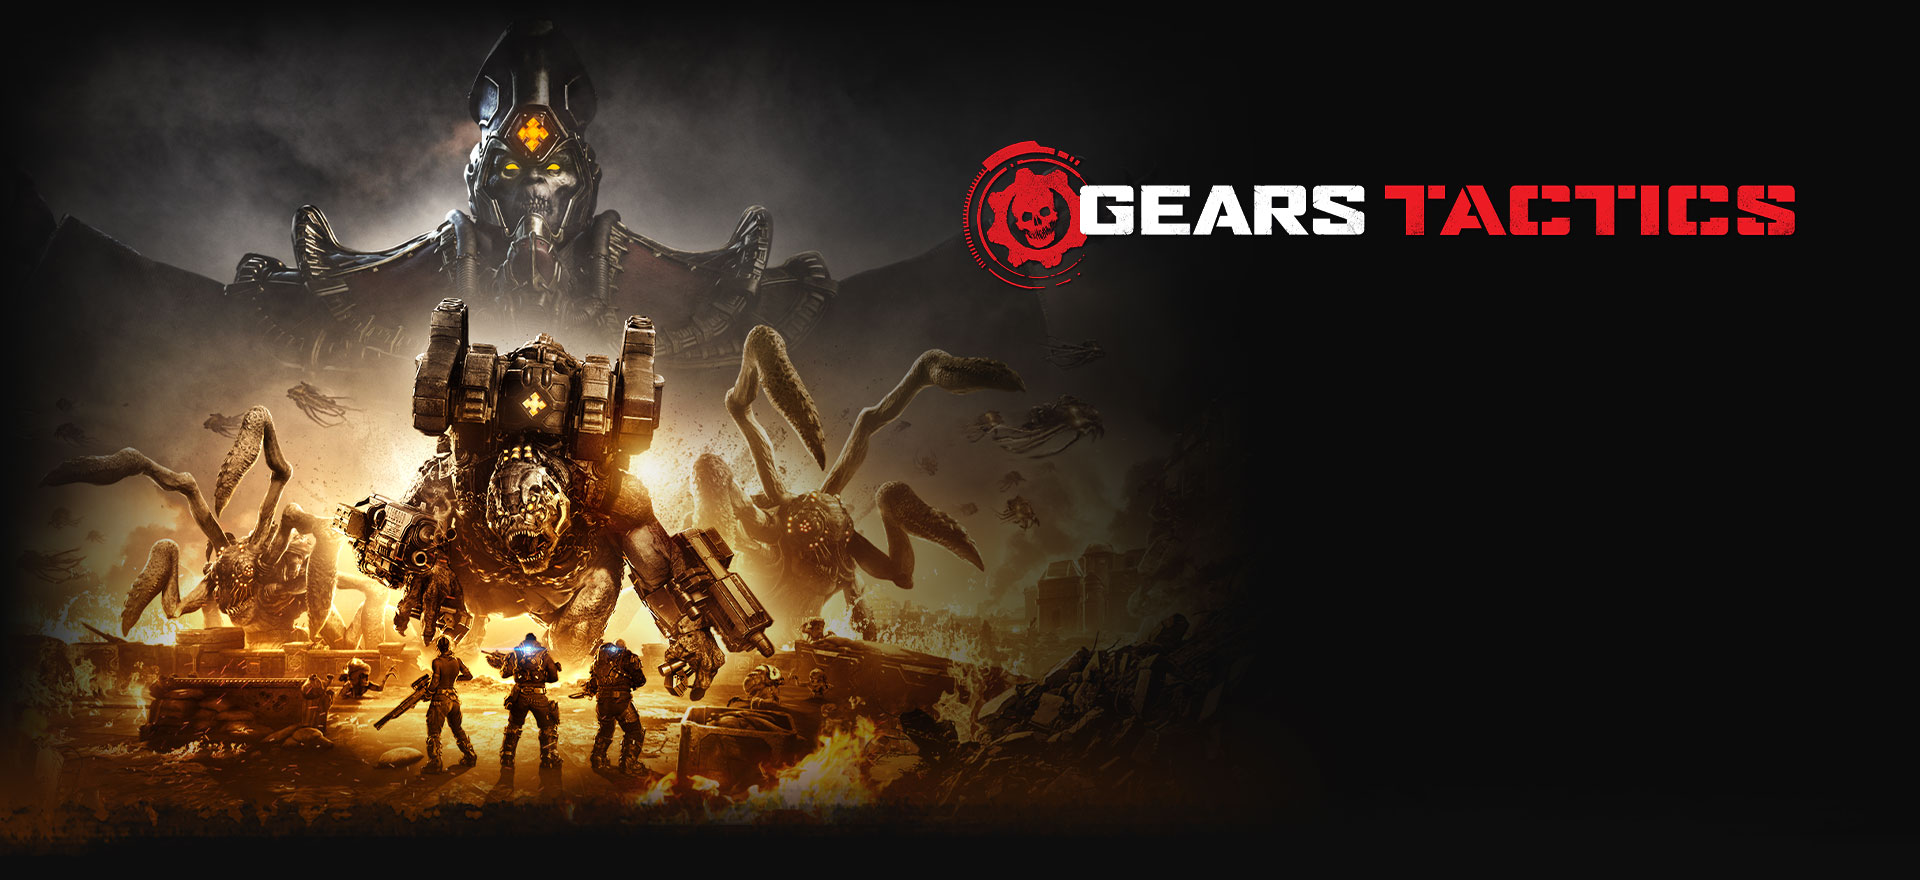 Gears Tactics, Three characters in heavy armor face large monsters in a burning war zone